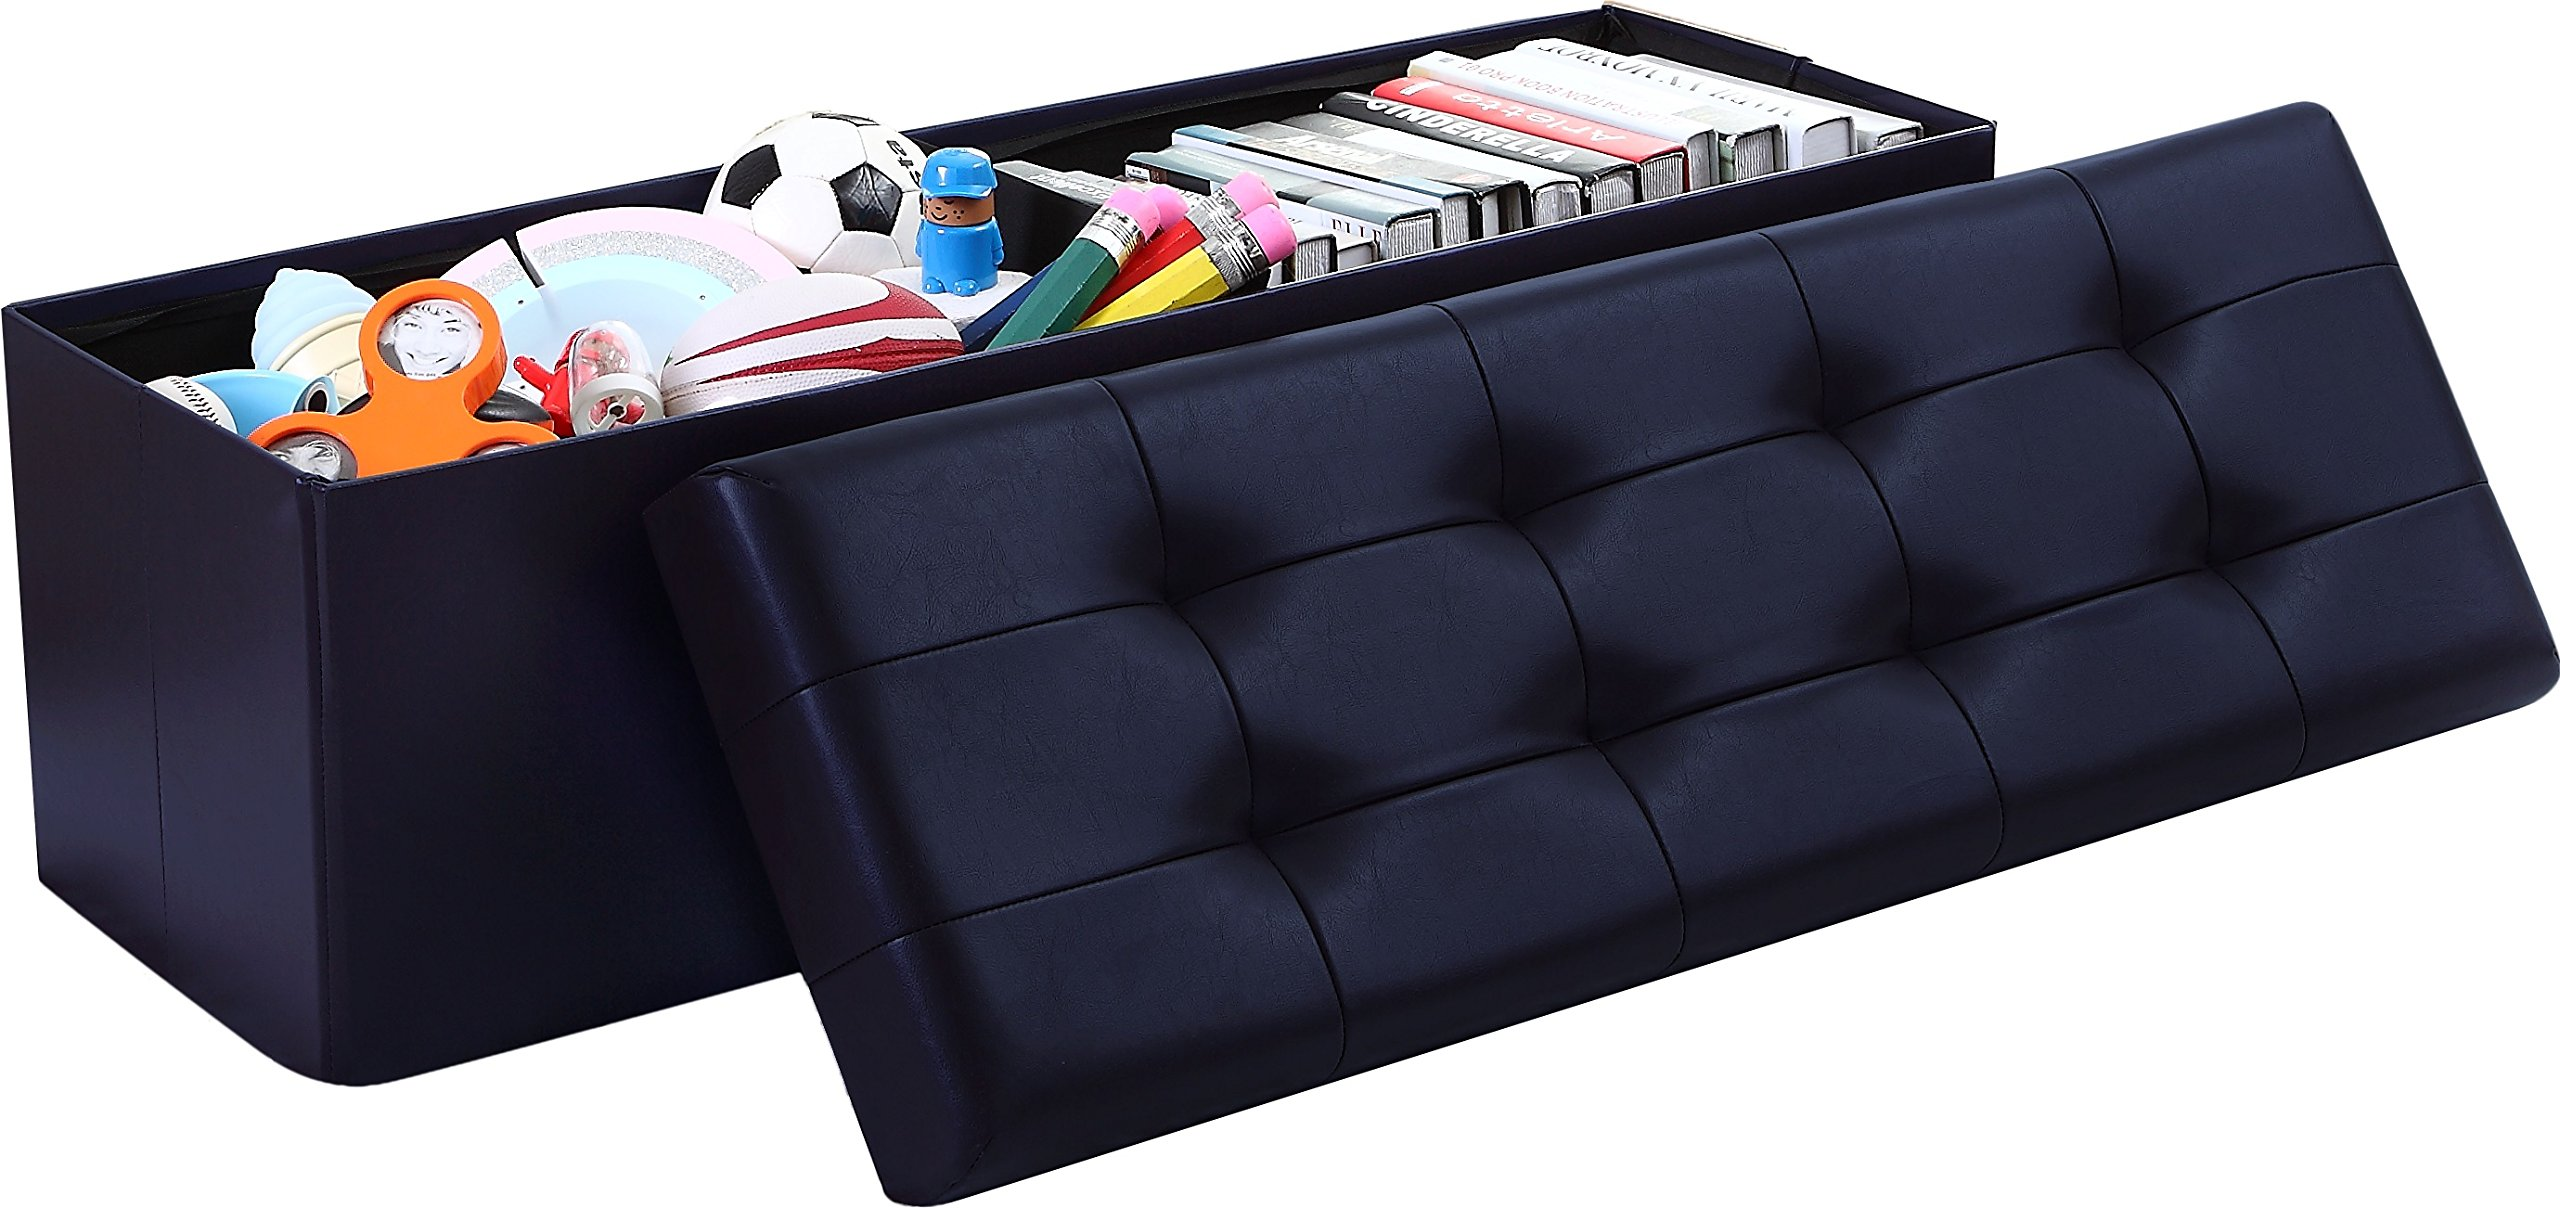 Ellington Home Foldable Tufted Faux Leather Large Storage Ottoman Bench Foot Rest Stool/Seat - 15'' x 45'' x 15'' (Navy)